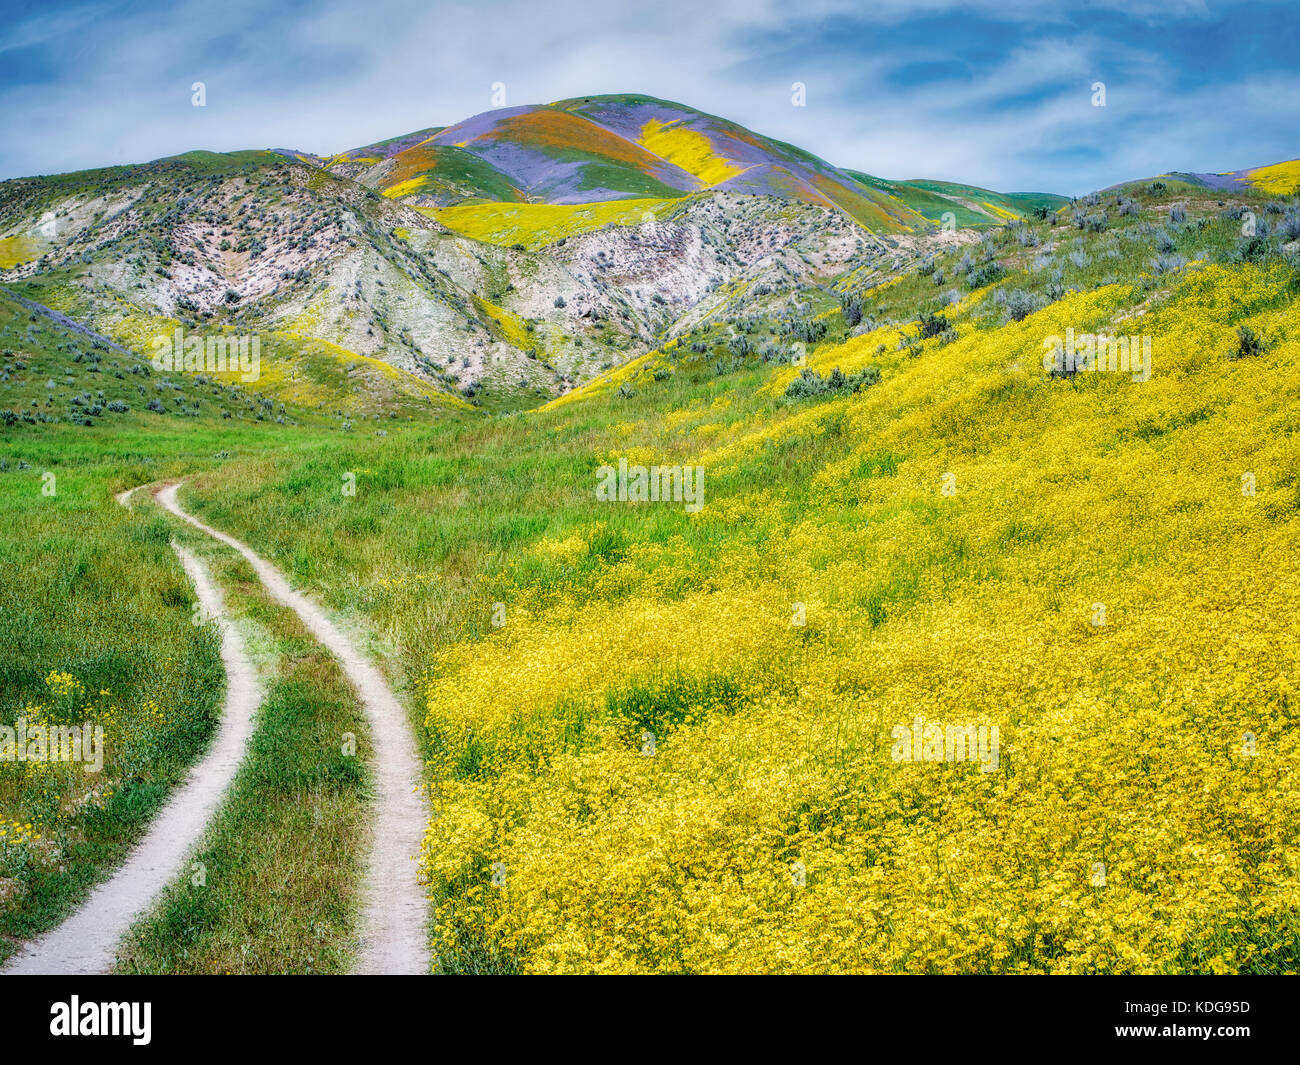 Domaine de la colline daisies (monolopia lanceolata) et chemin de terre carrizo plain national monument (Californie) Photo Stock